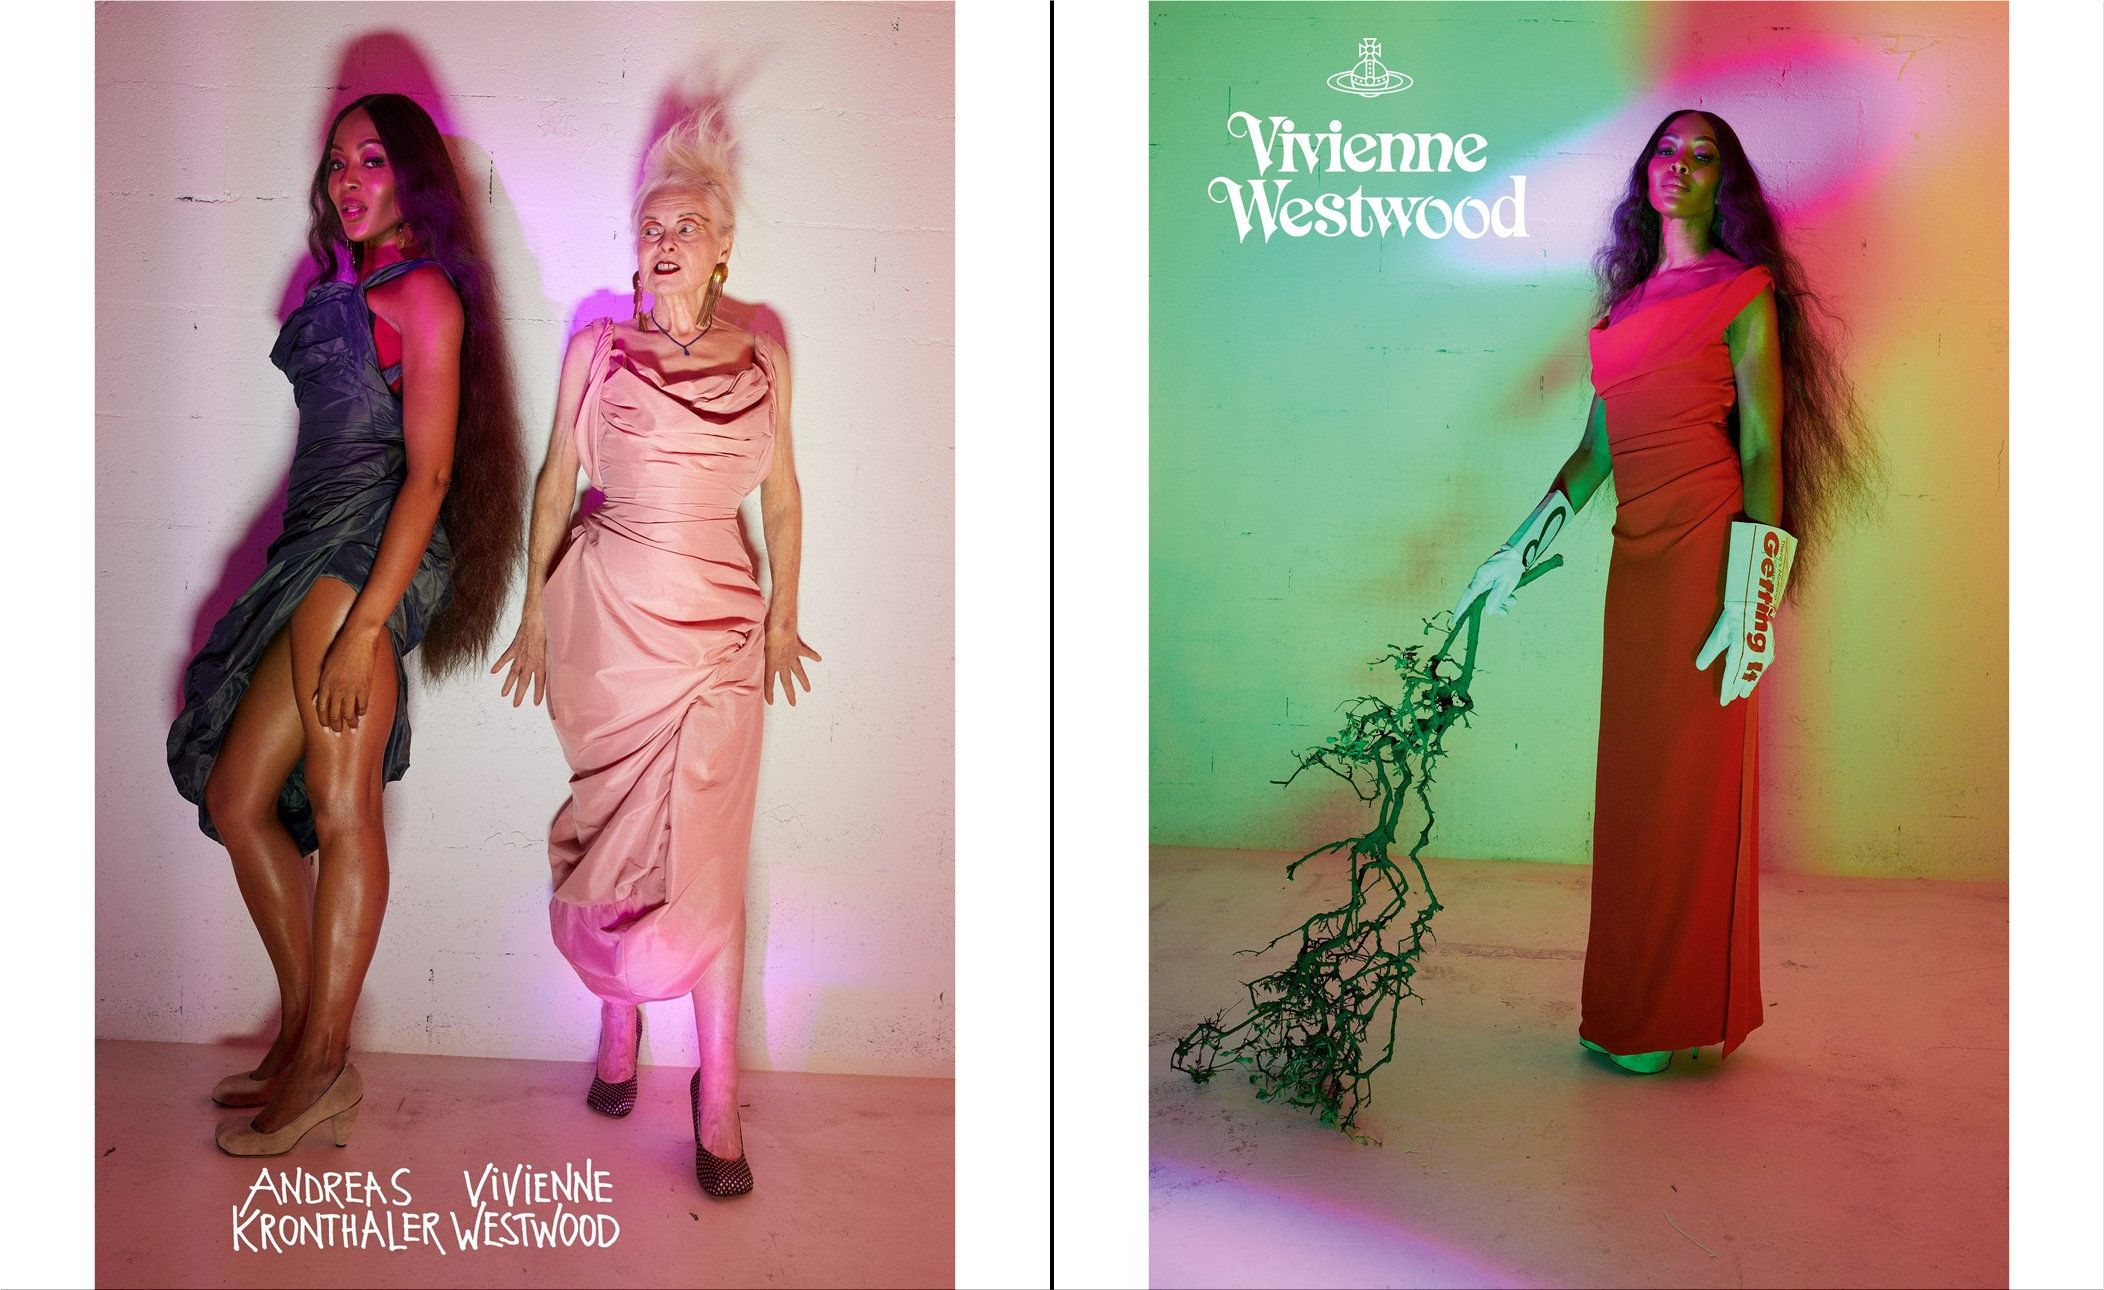 Naomi Campbell for Vivienne Westwood